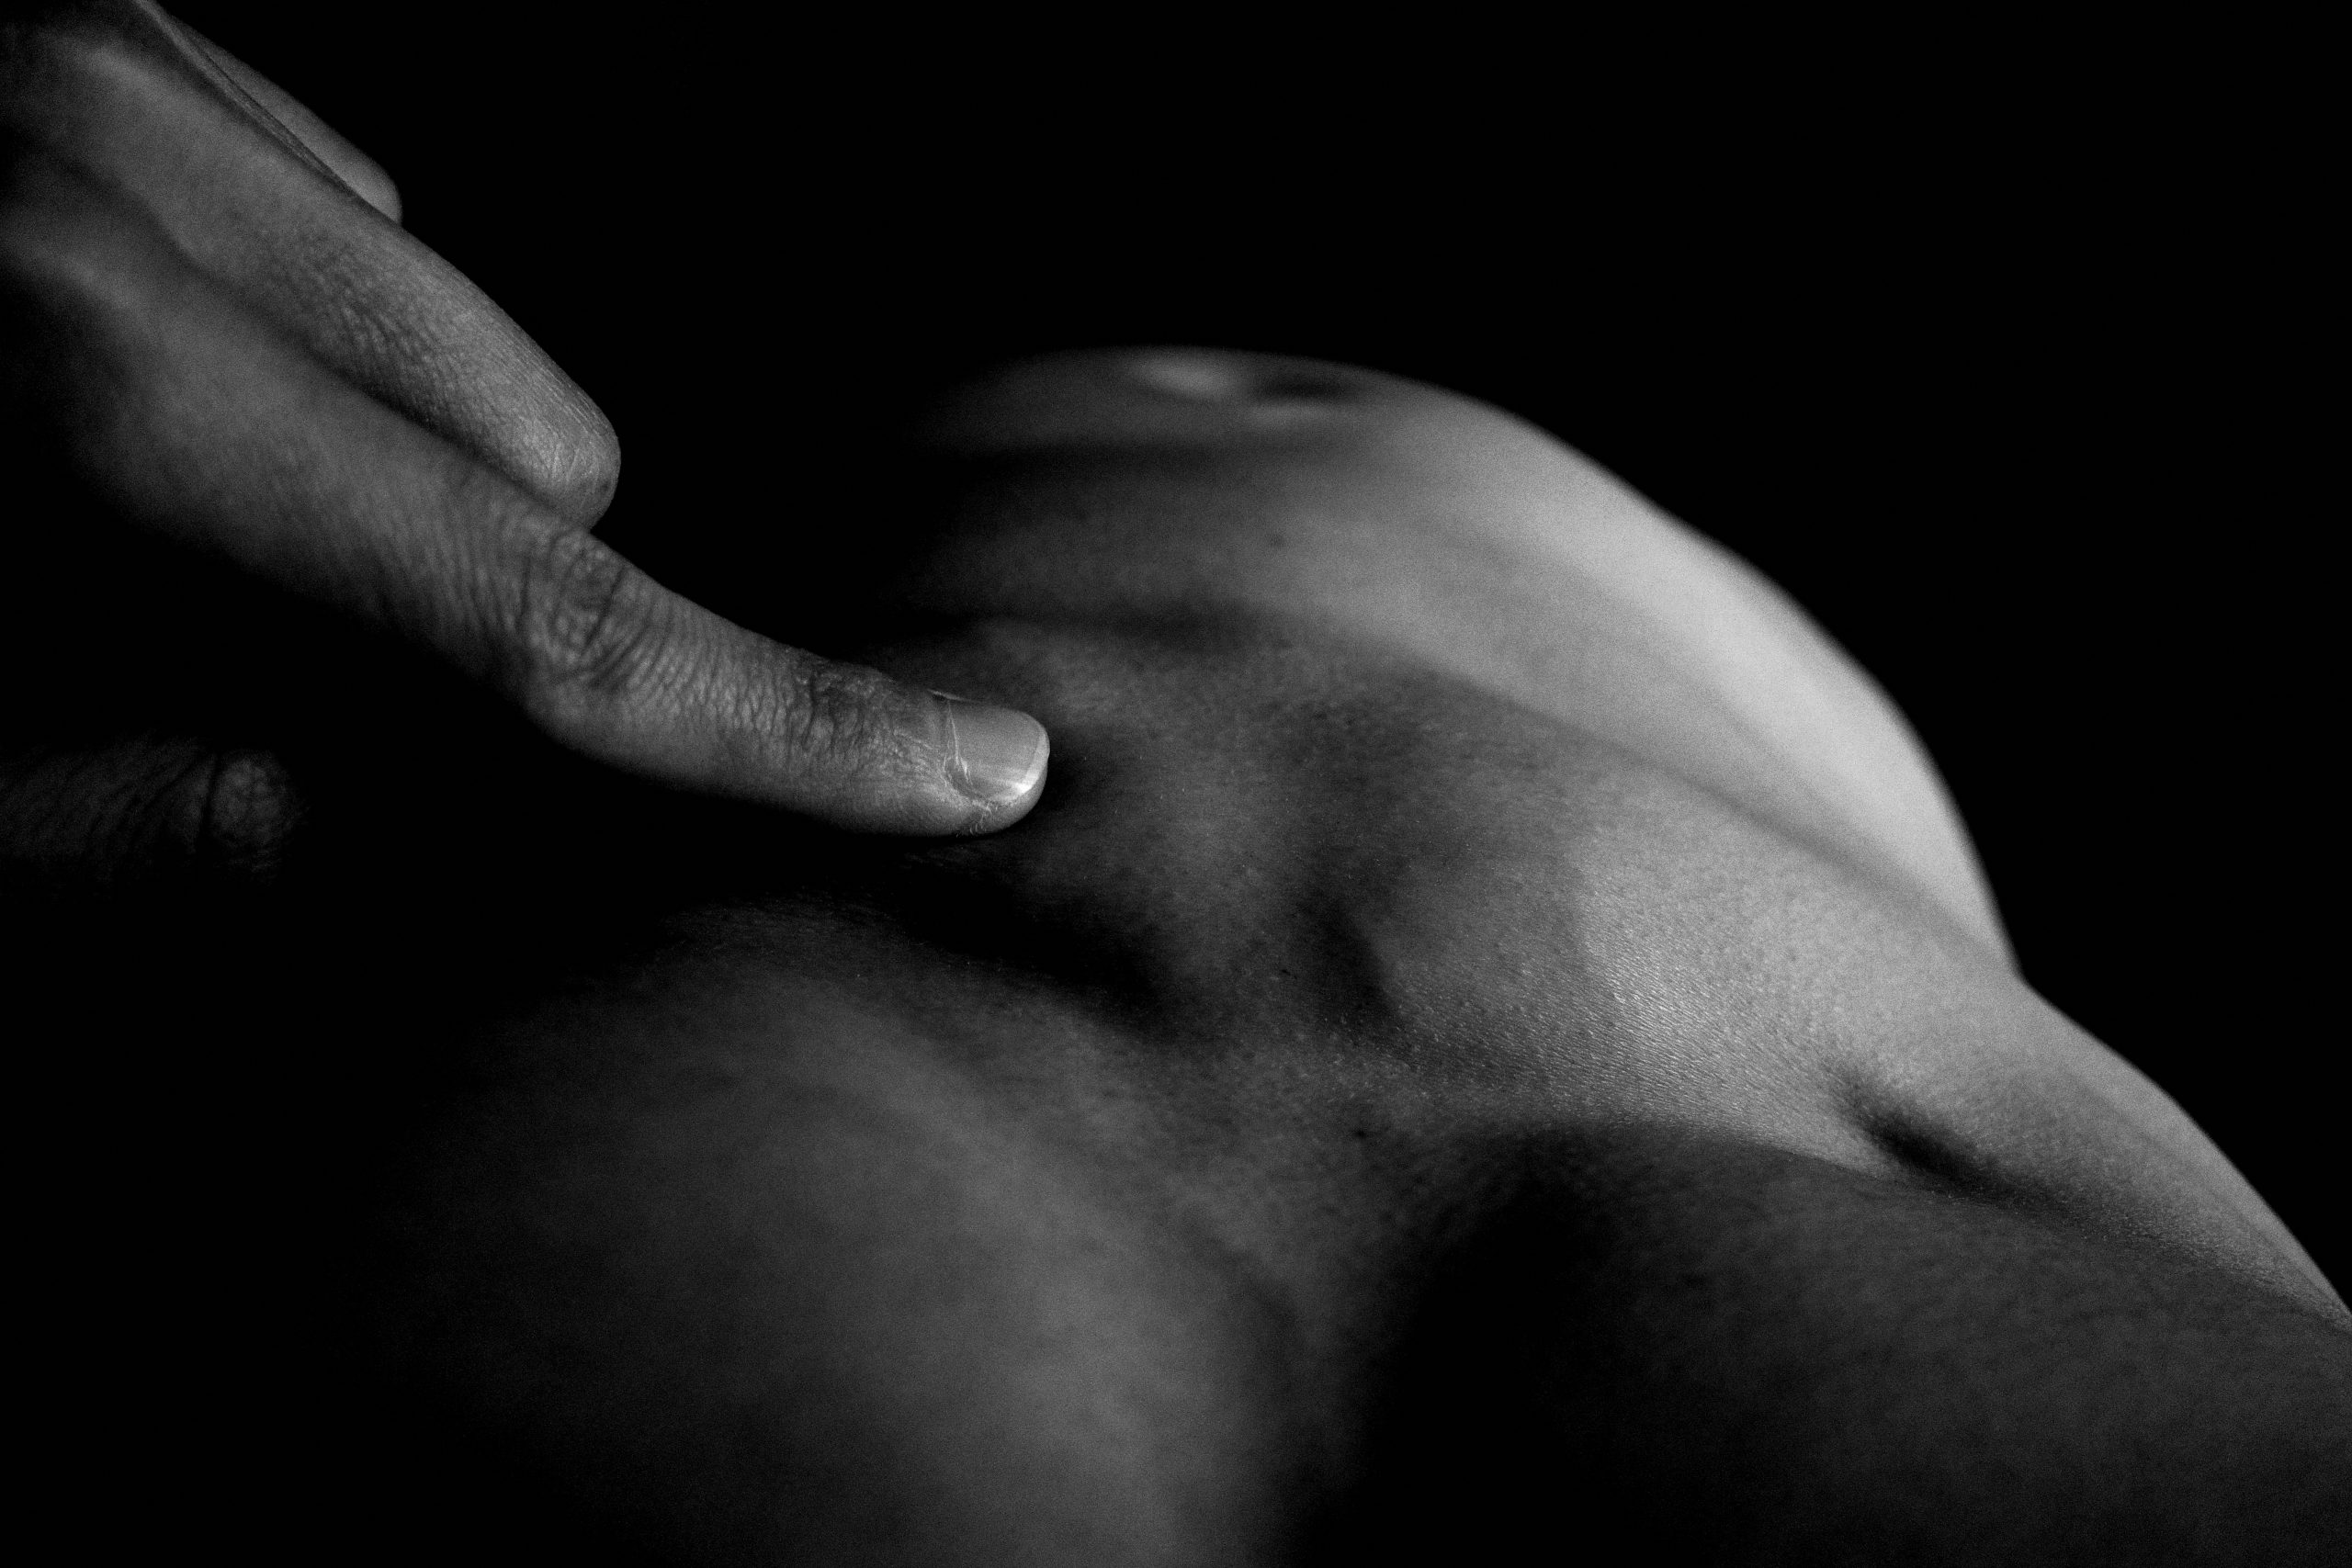 finger touch abs muscle ricoh gr iii ERIC KIM 00031